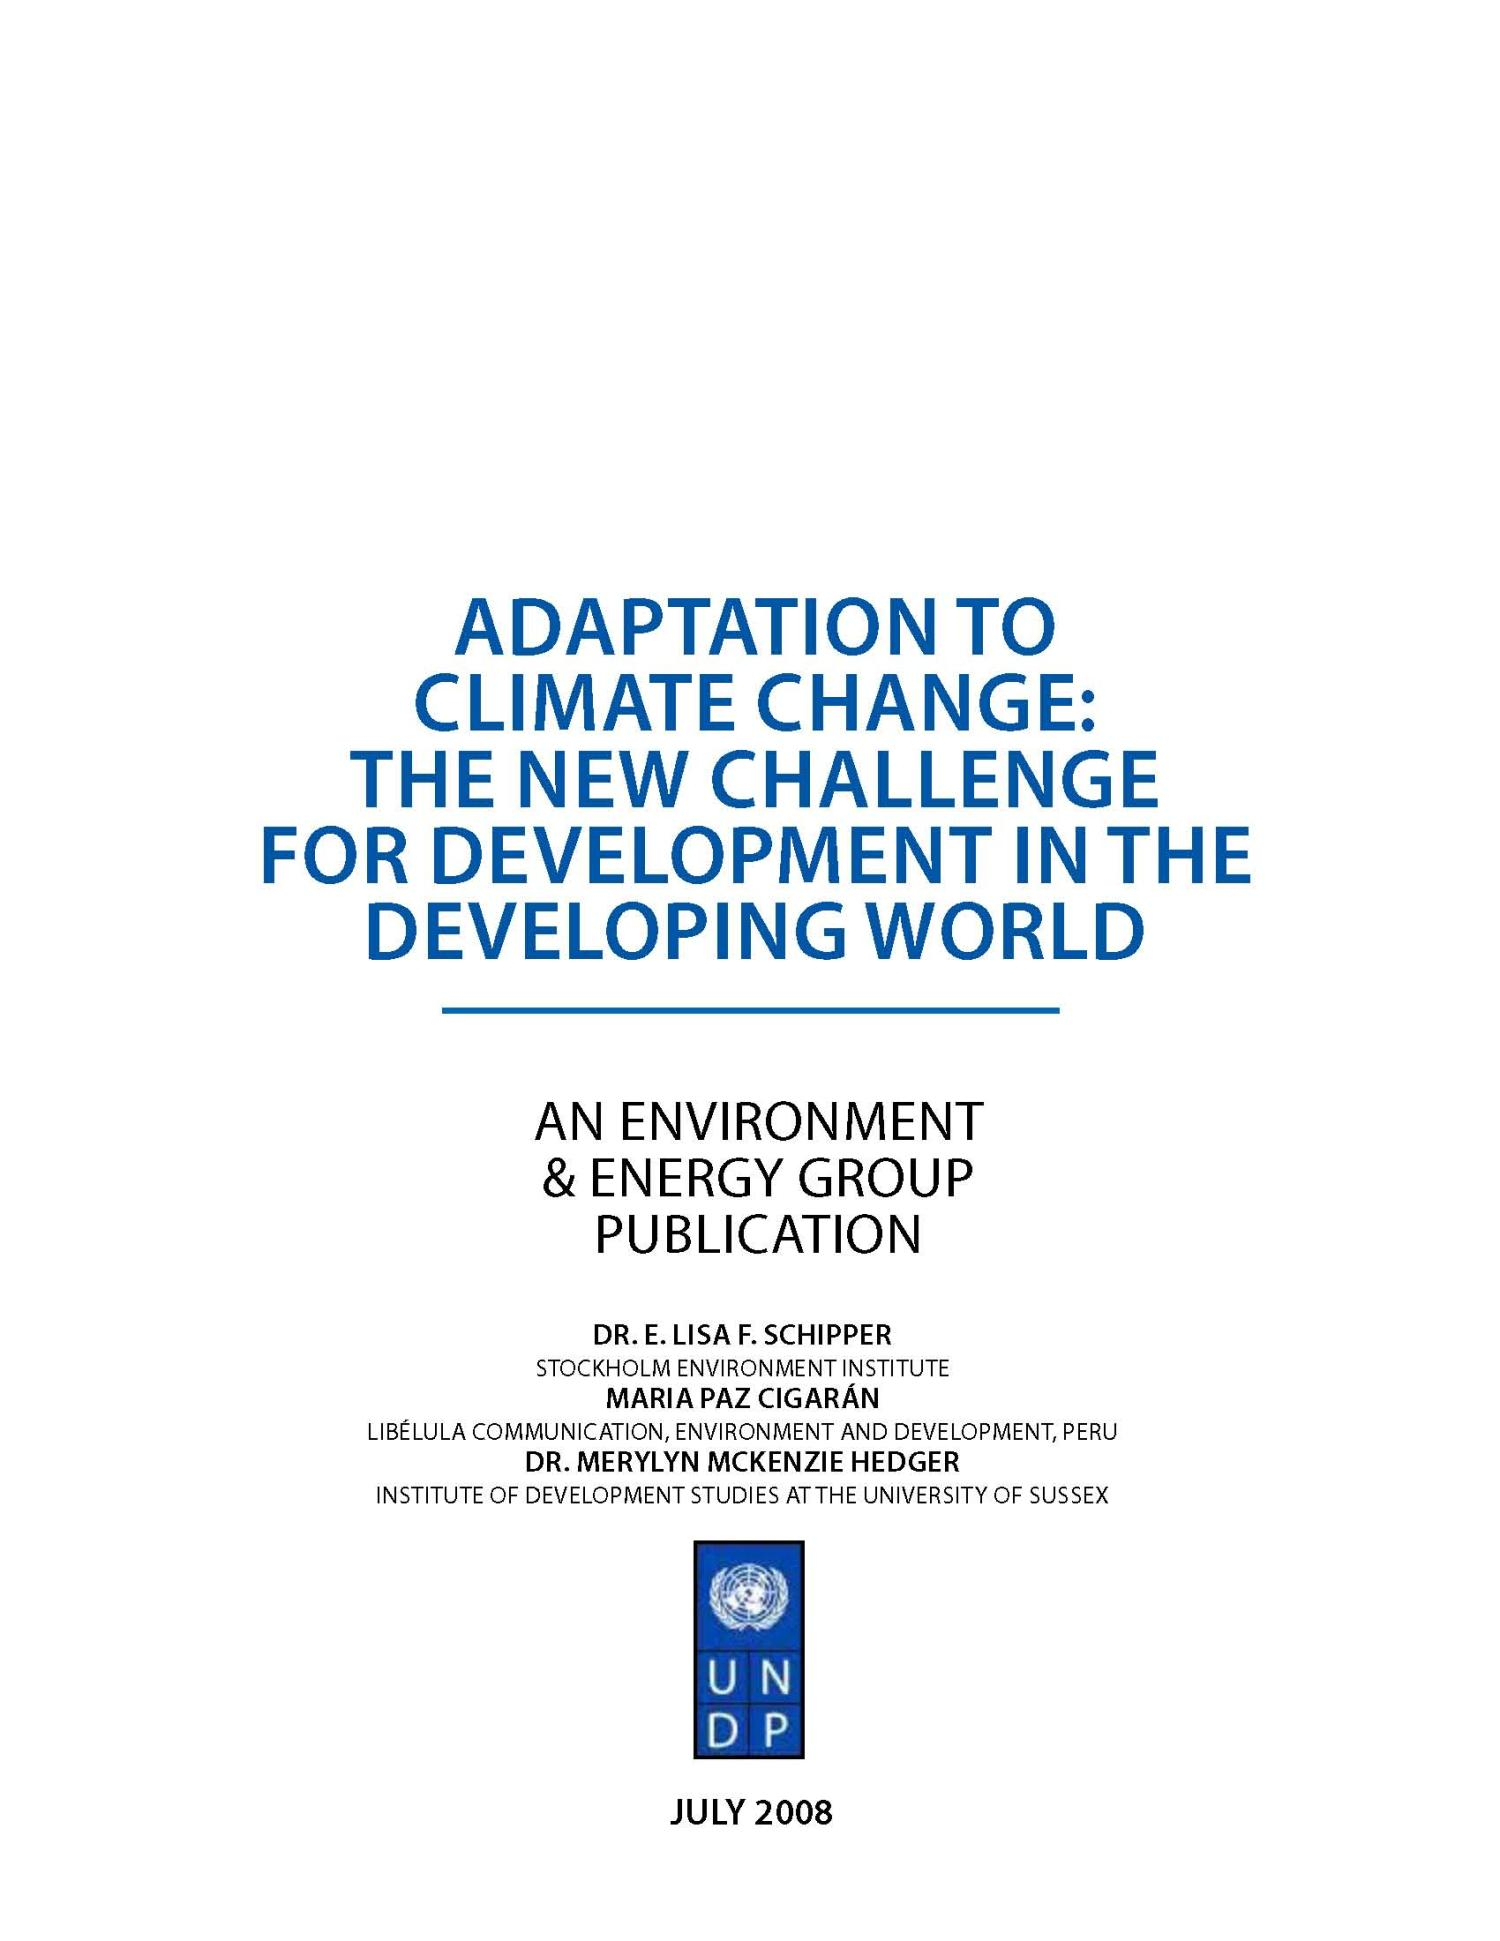 Adaptation to Climate Change: The New Challenge for Development in the Developing World                                                                                                      1